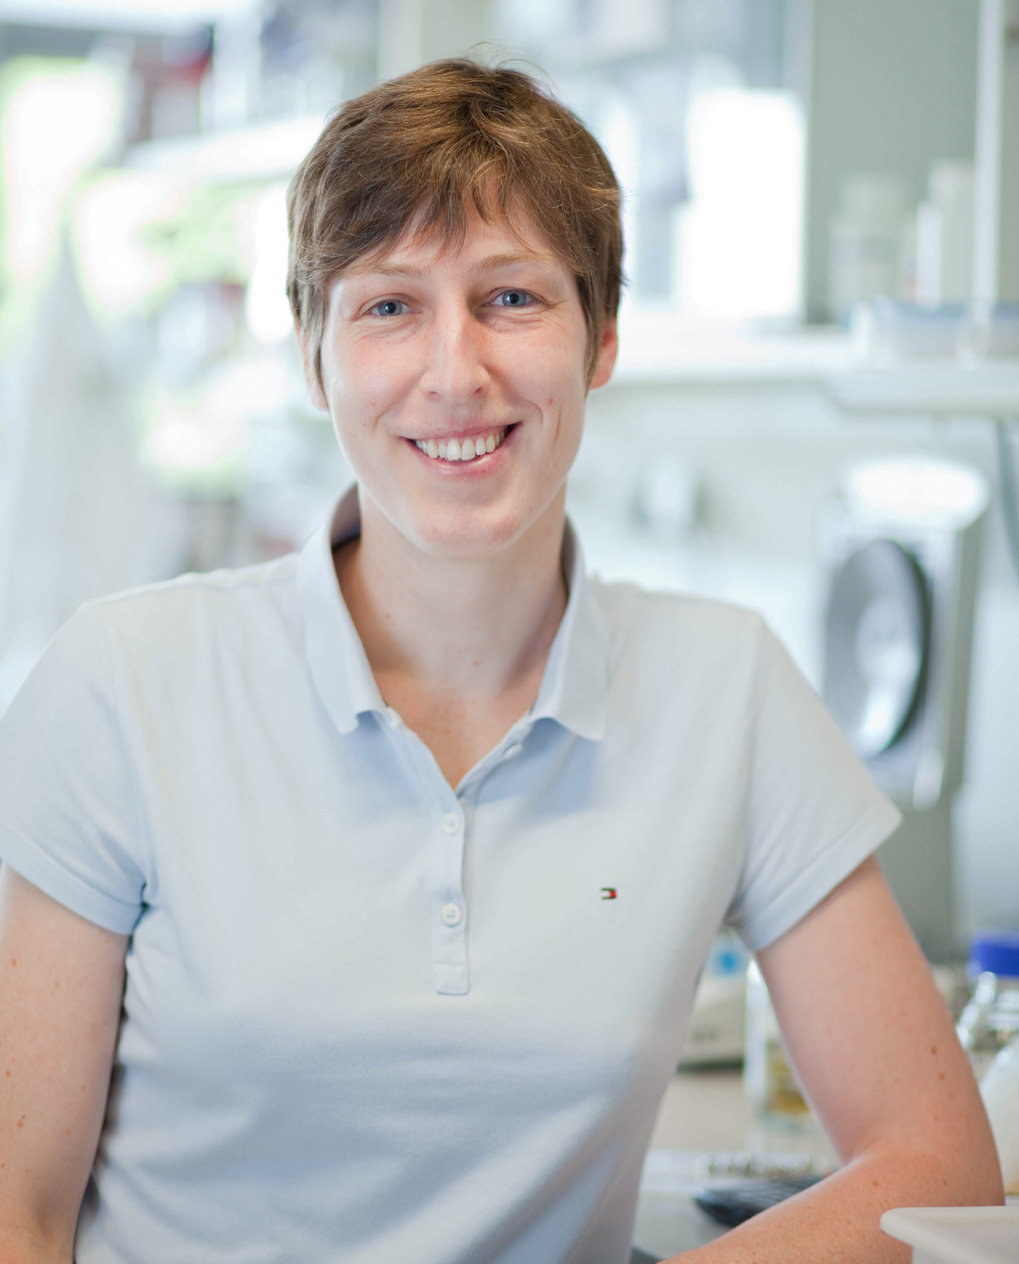 Former Research Group leader Birte Höcker now is professor of Biochemistry at the University of Bayreuth. She sees the ERC grant as a catalyst for her career.